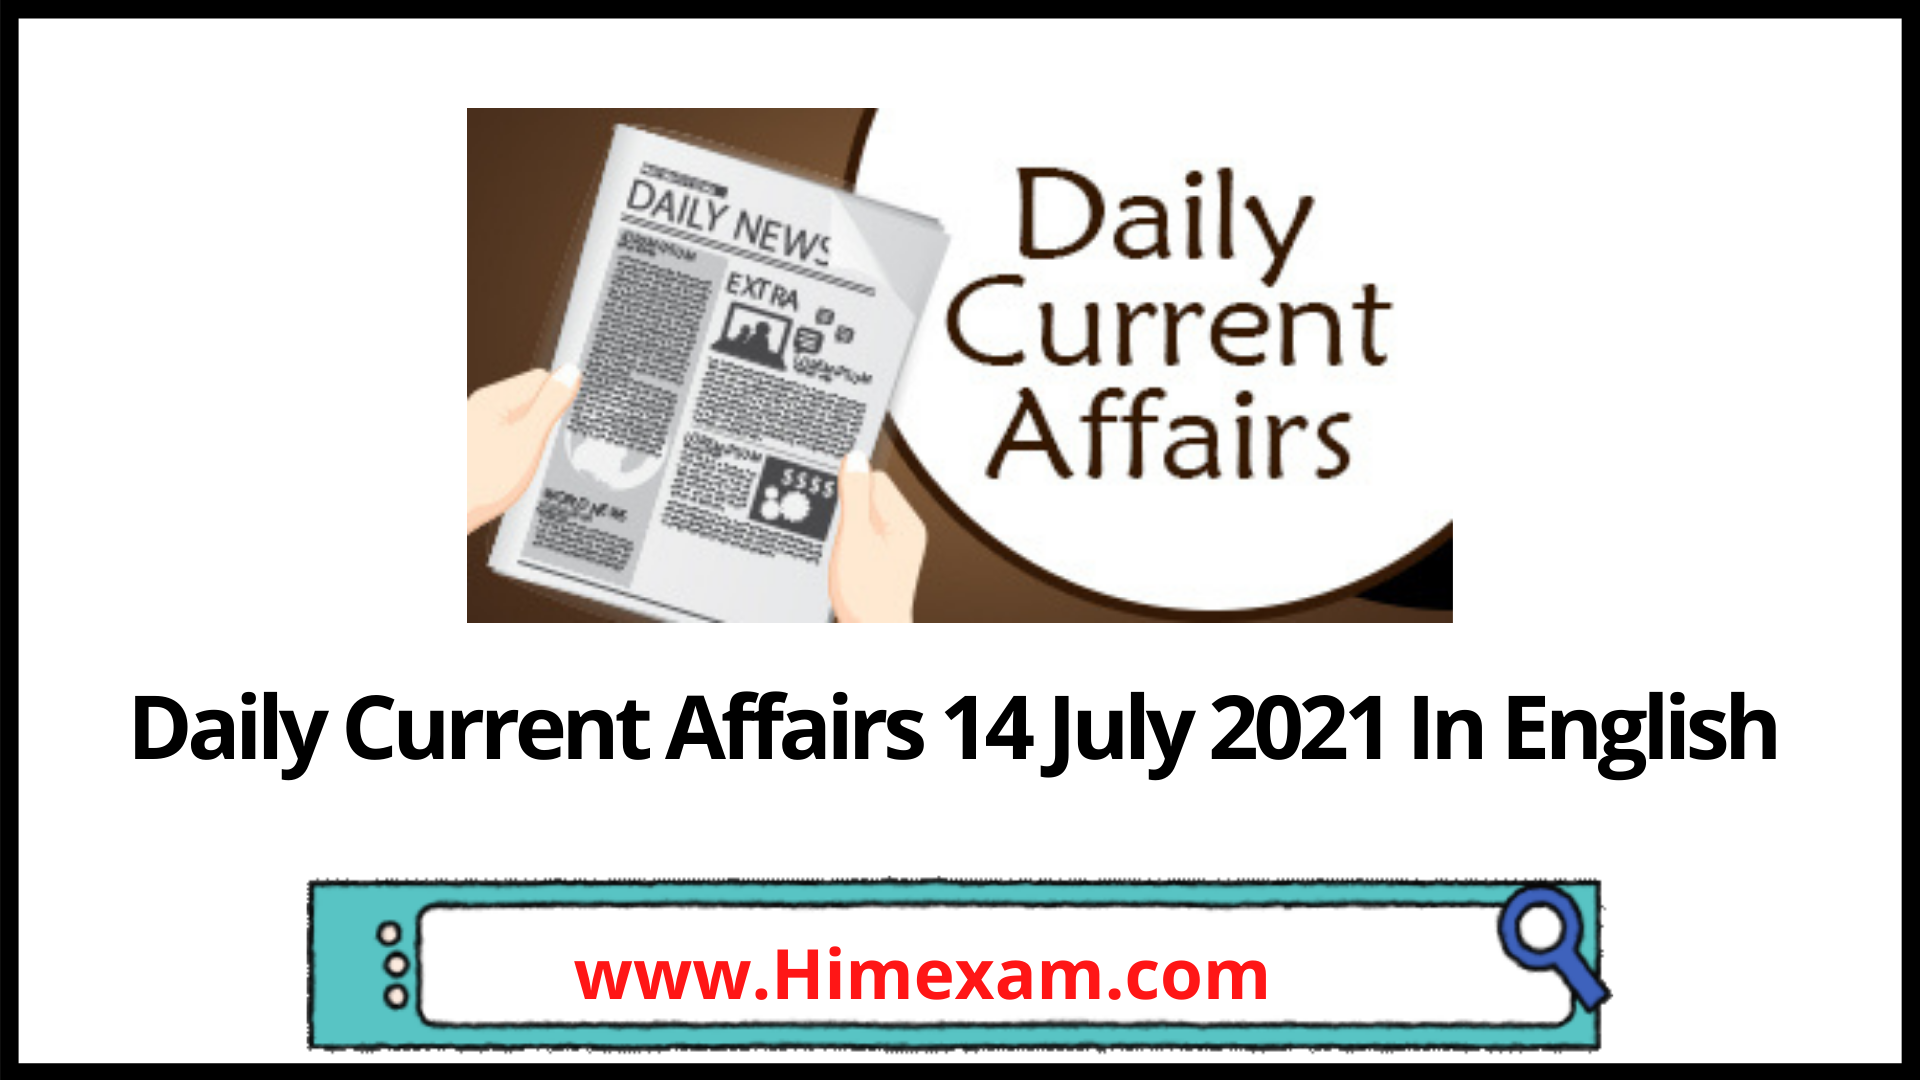 Daily Current Affairs 14 July 2021 In English